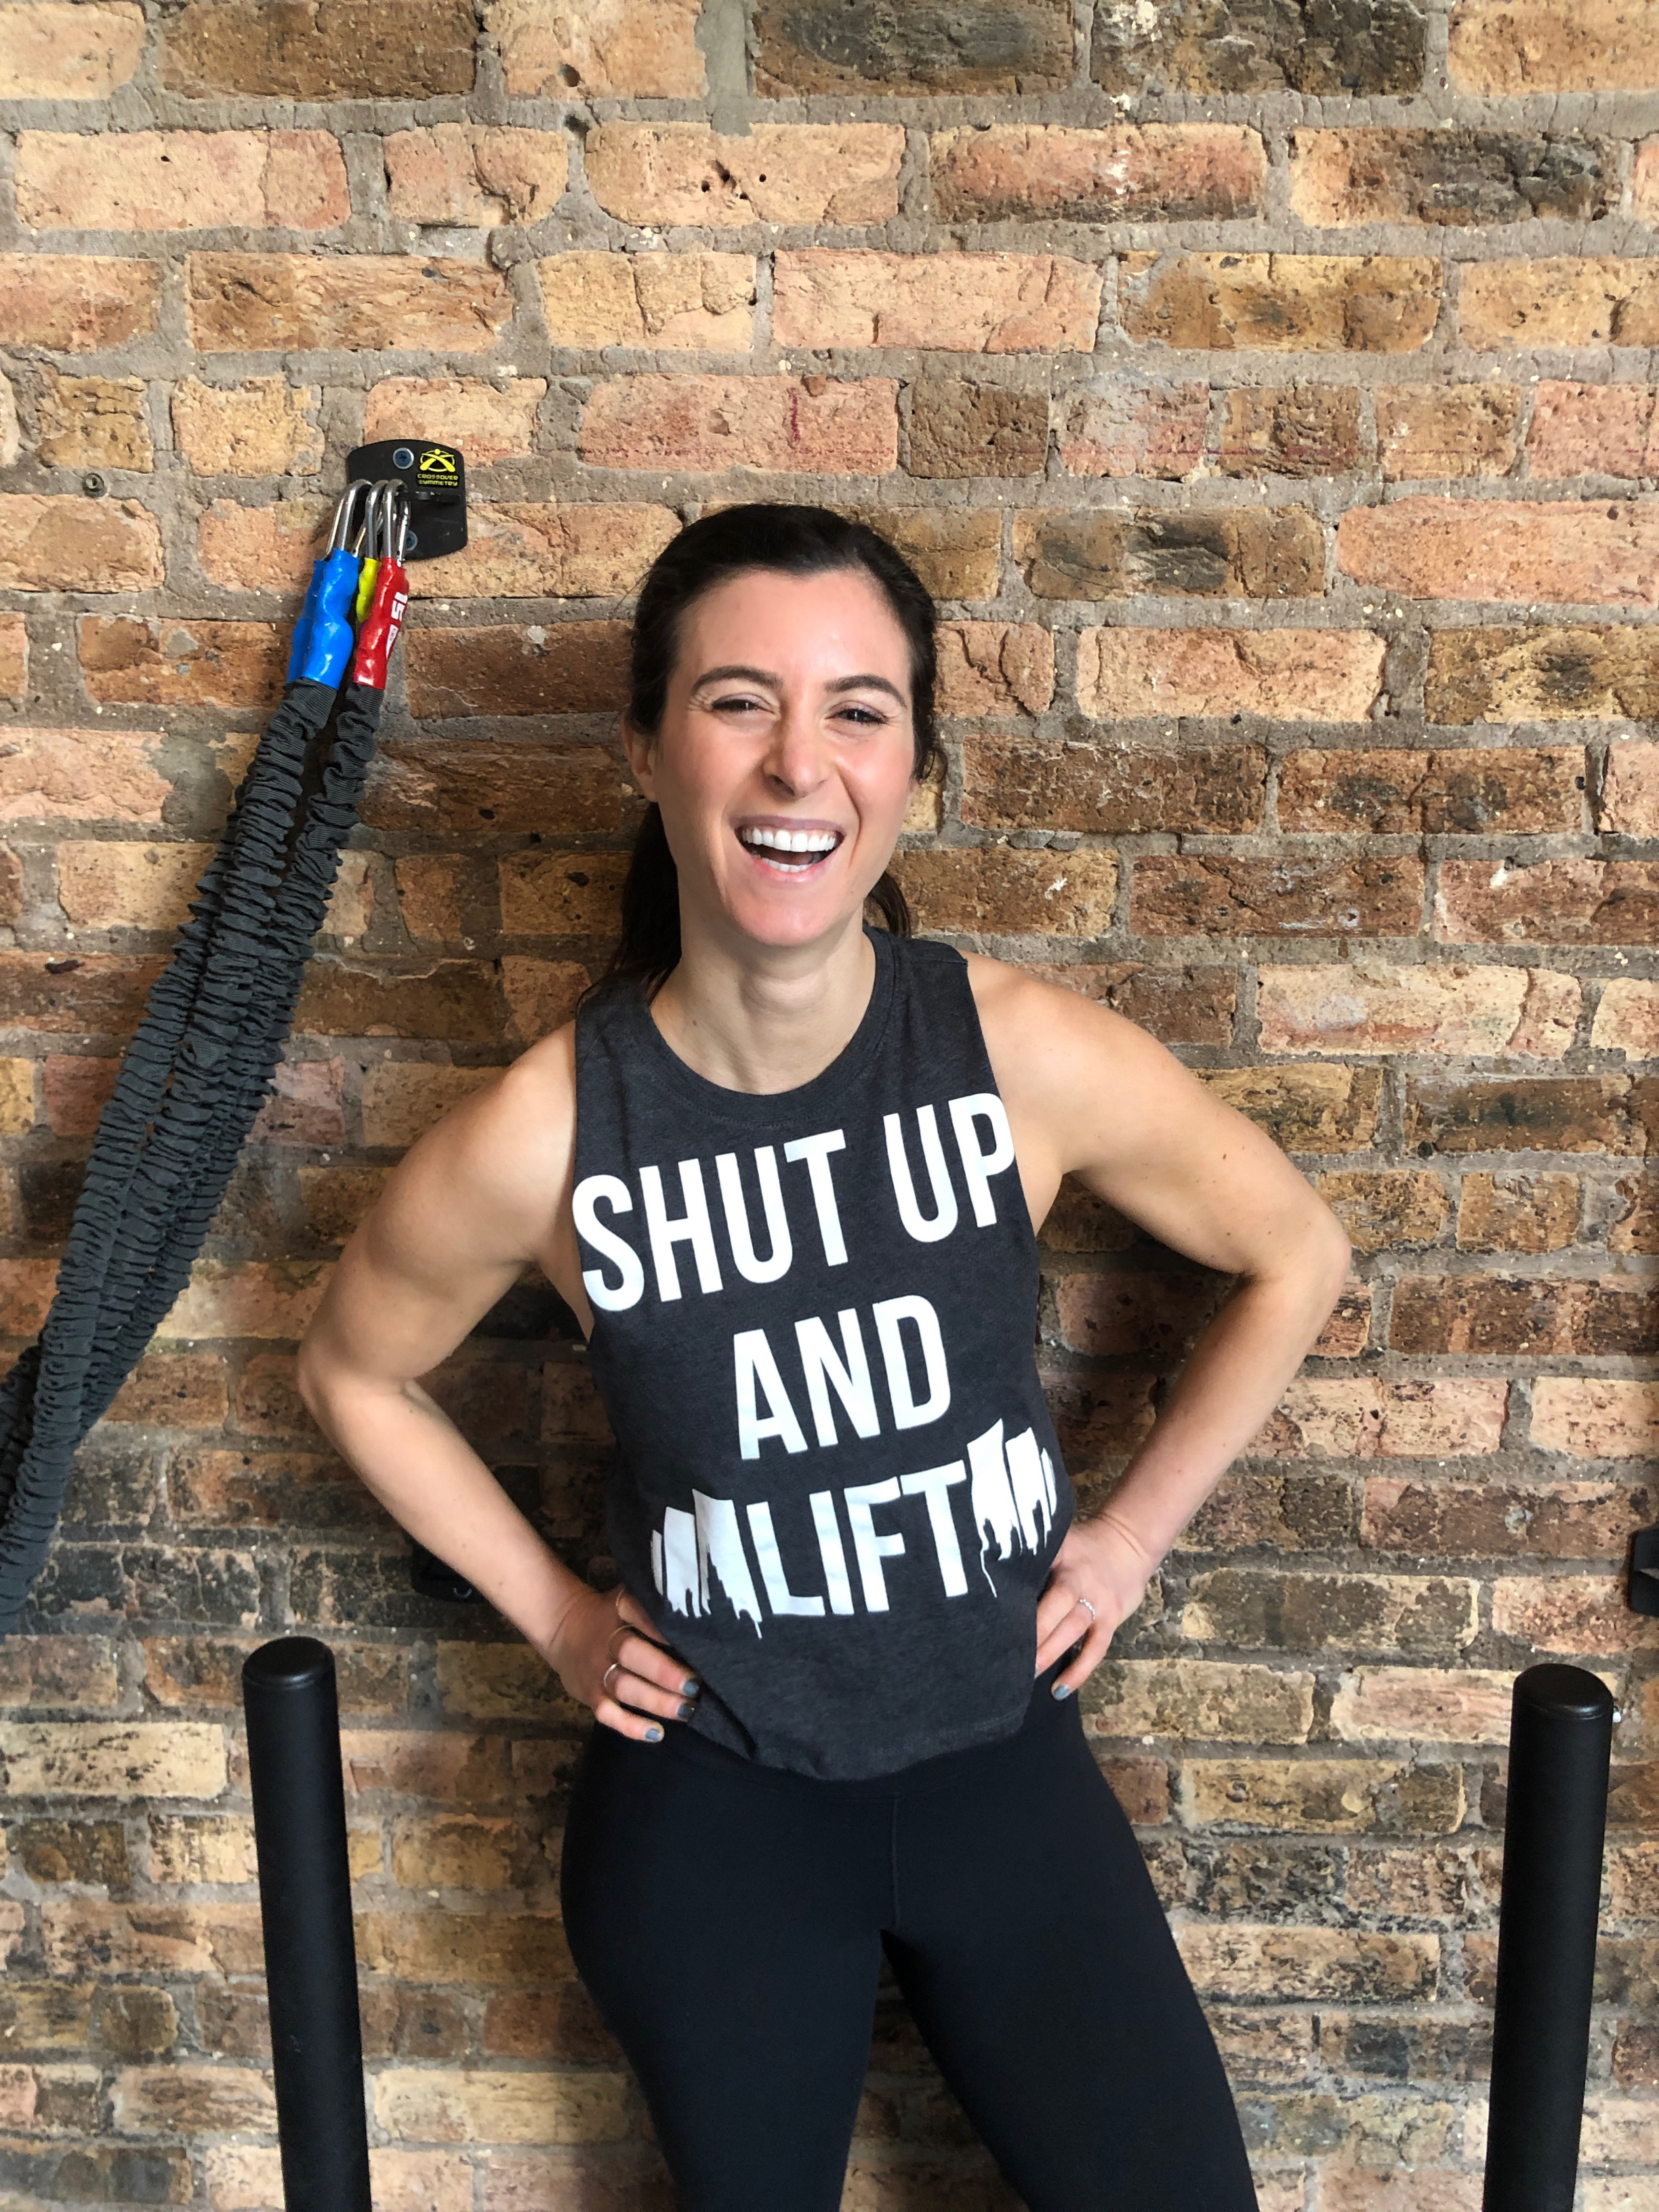 Gina Caifano - Group Conditioning Instructor - I'm a lover of all sports, health, and fitness. Throughout the years, I have created a high-level training experience for athletes of all levels and received certification as a Sports Performance Specialist and as an ACE Certified Coach. I have been a Nike Trainer since 2010, while also obtaining my Masters in nursing (completed 2015). My passion and enthusiasm for movement come through in each and every session.My motto is simple: YOU are stronger than you think you are.